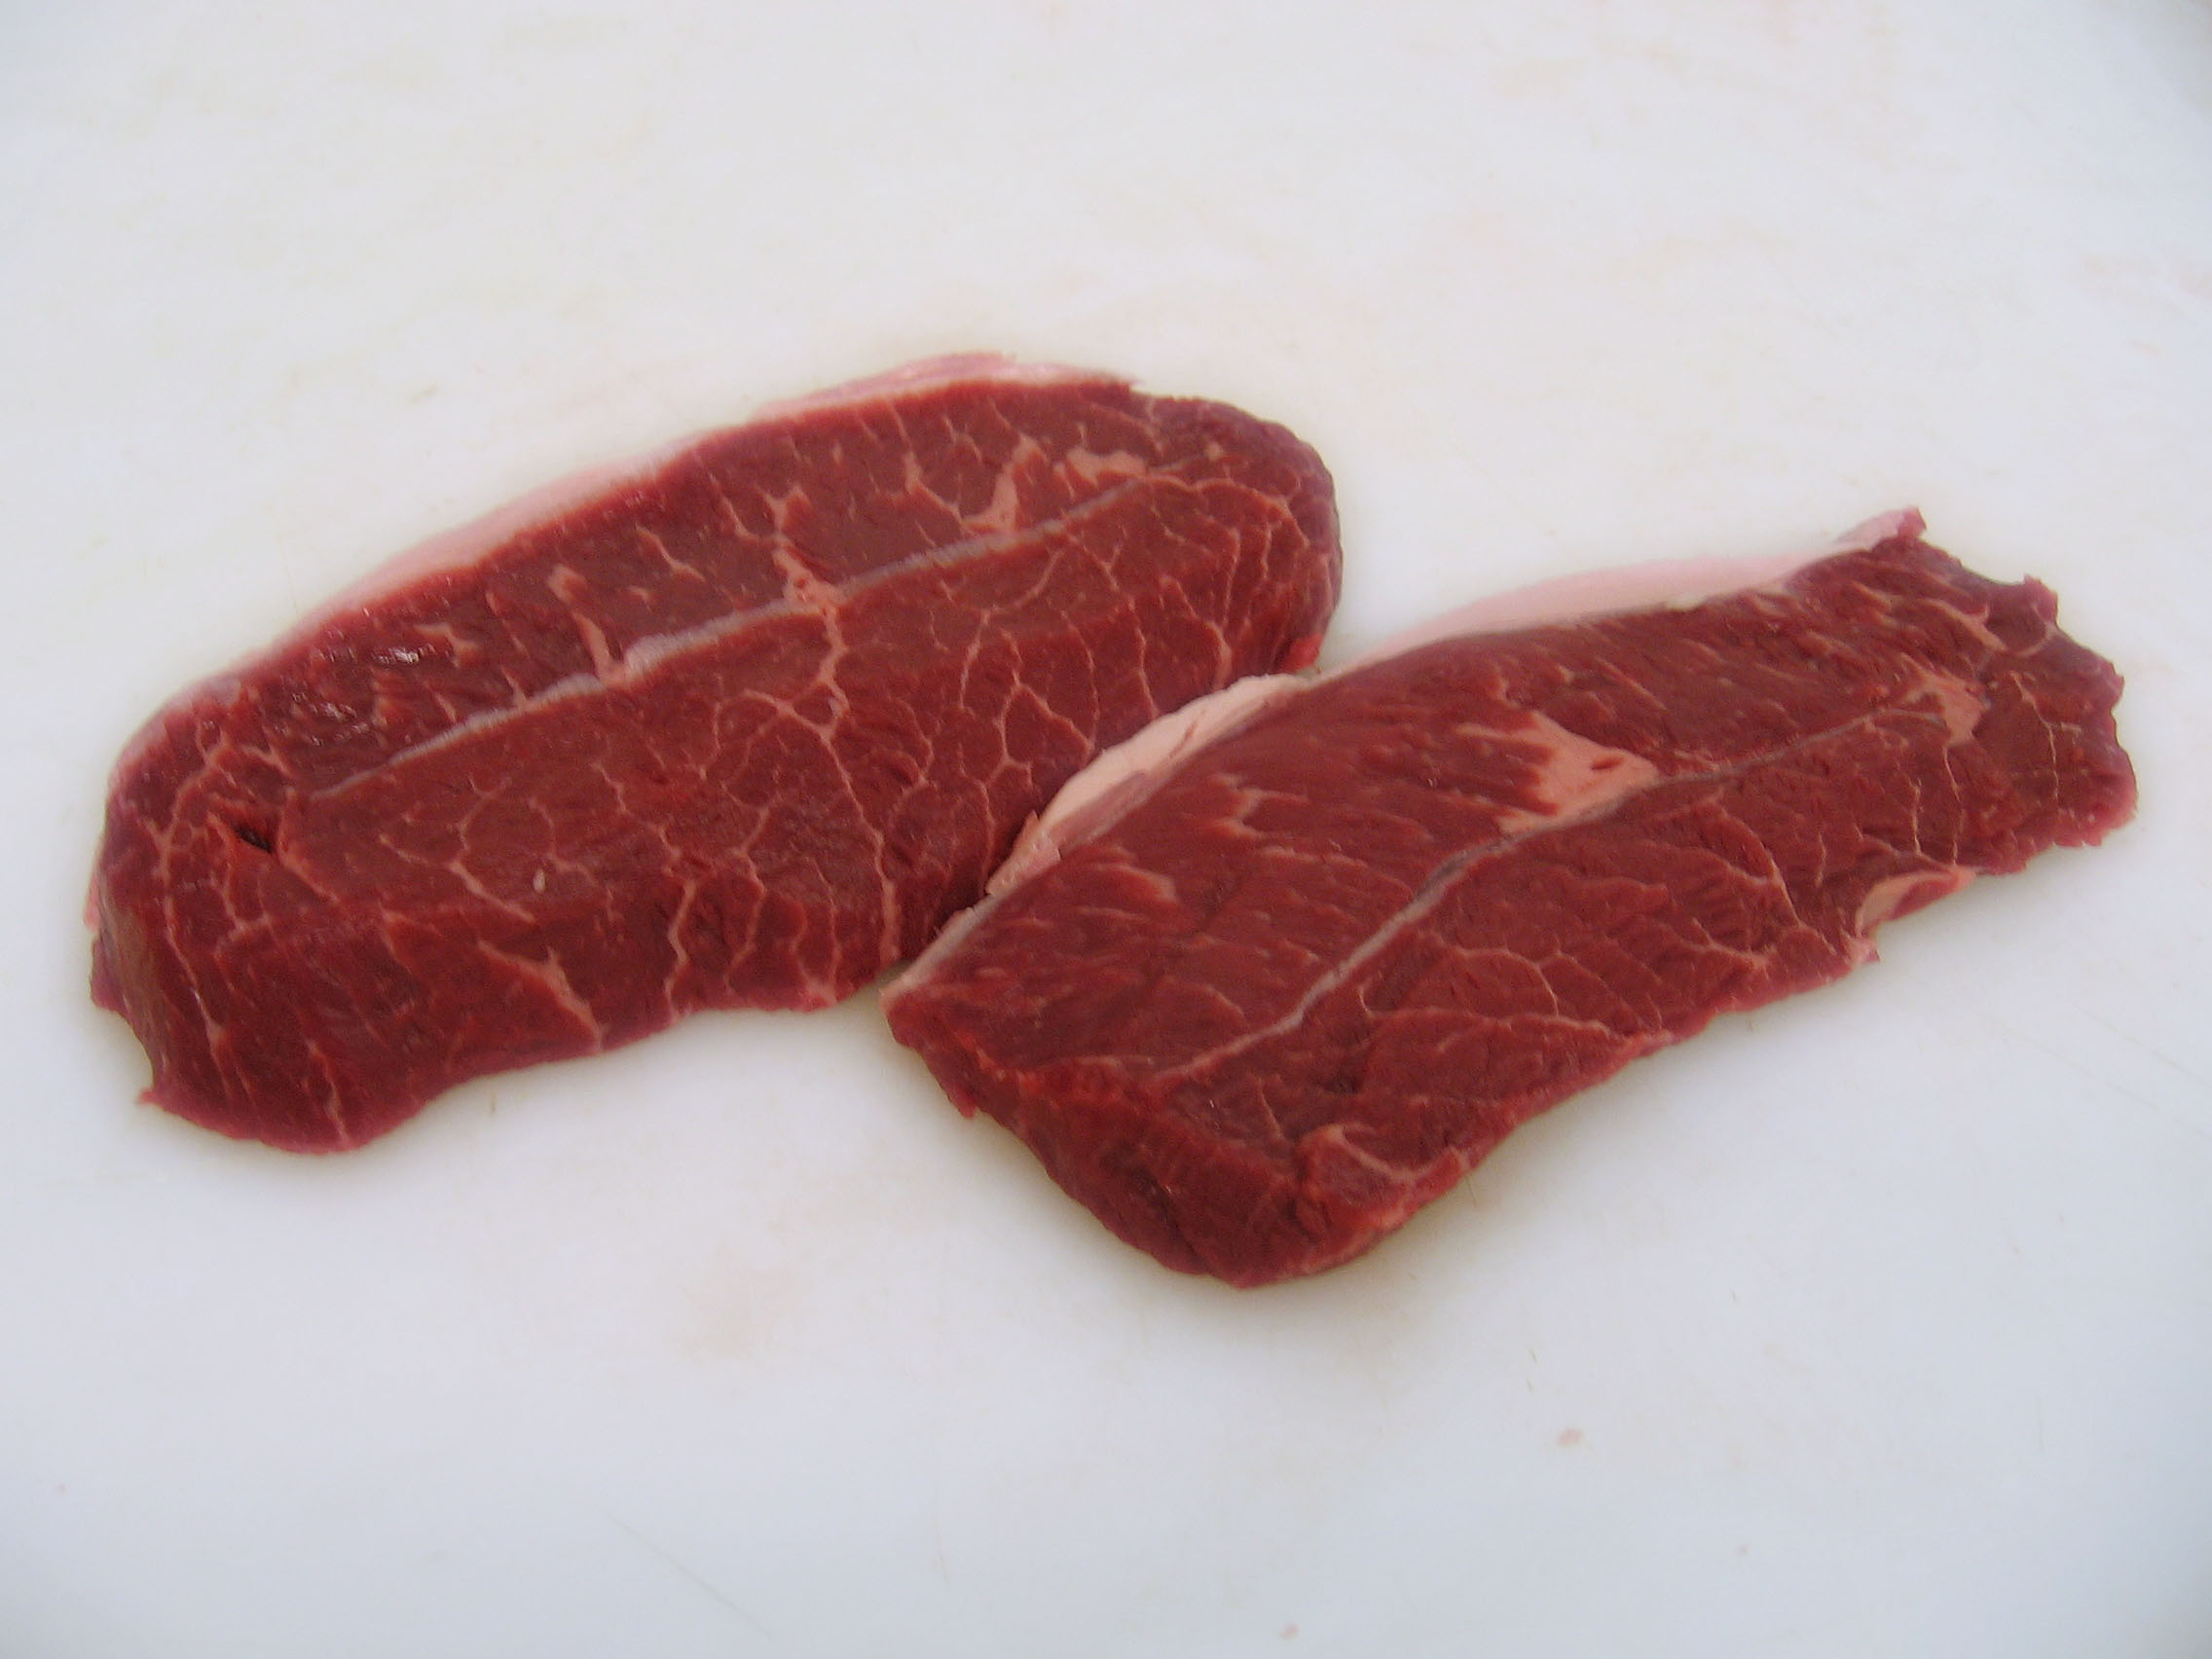 "ladesteaksareanexampleof""red""meat."